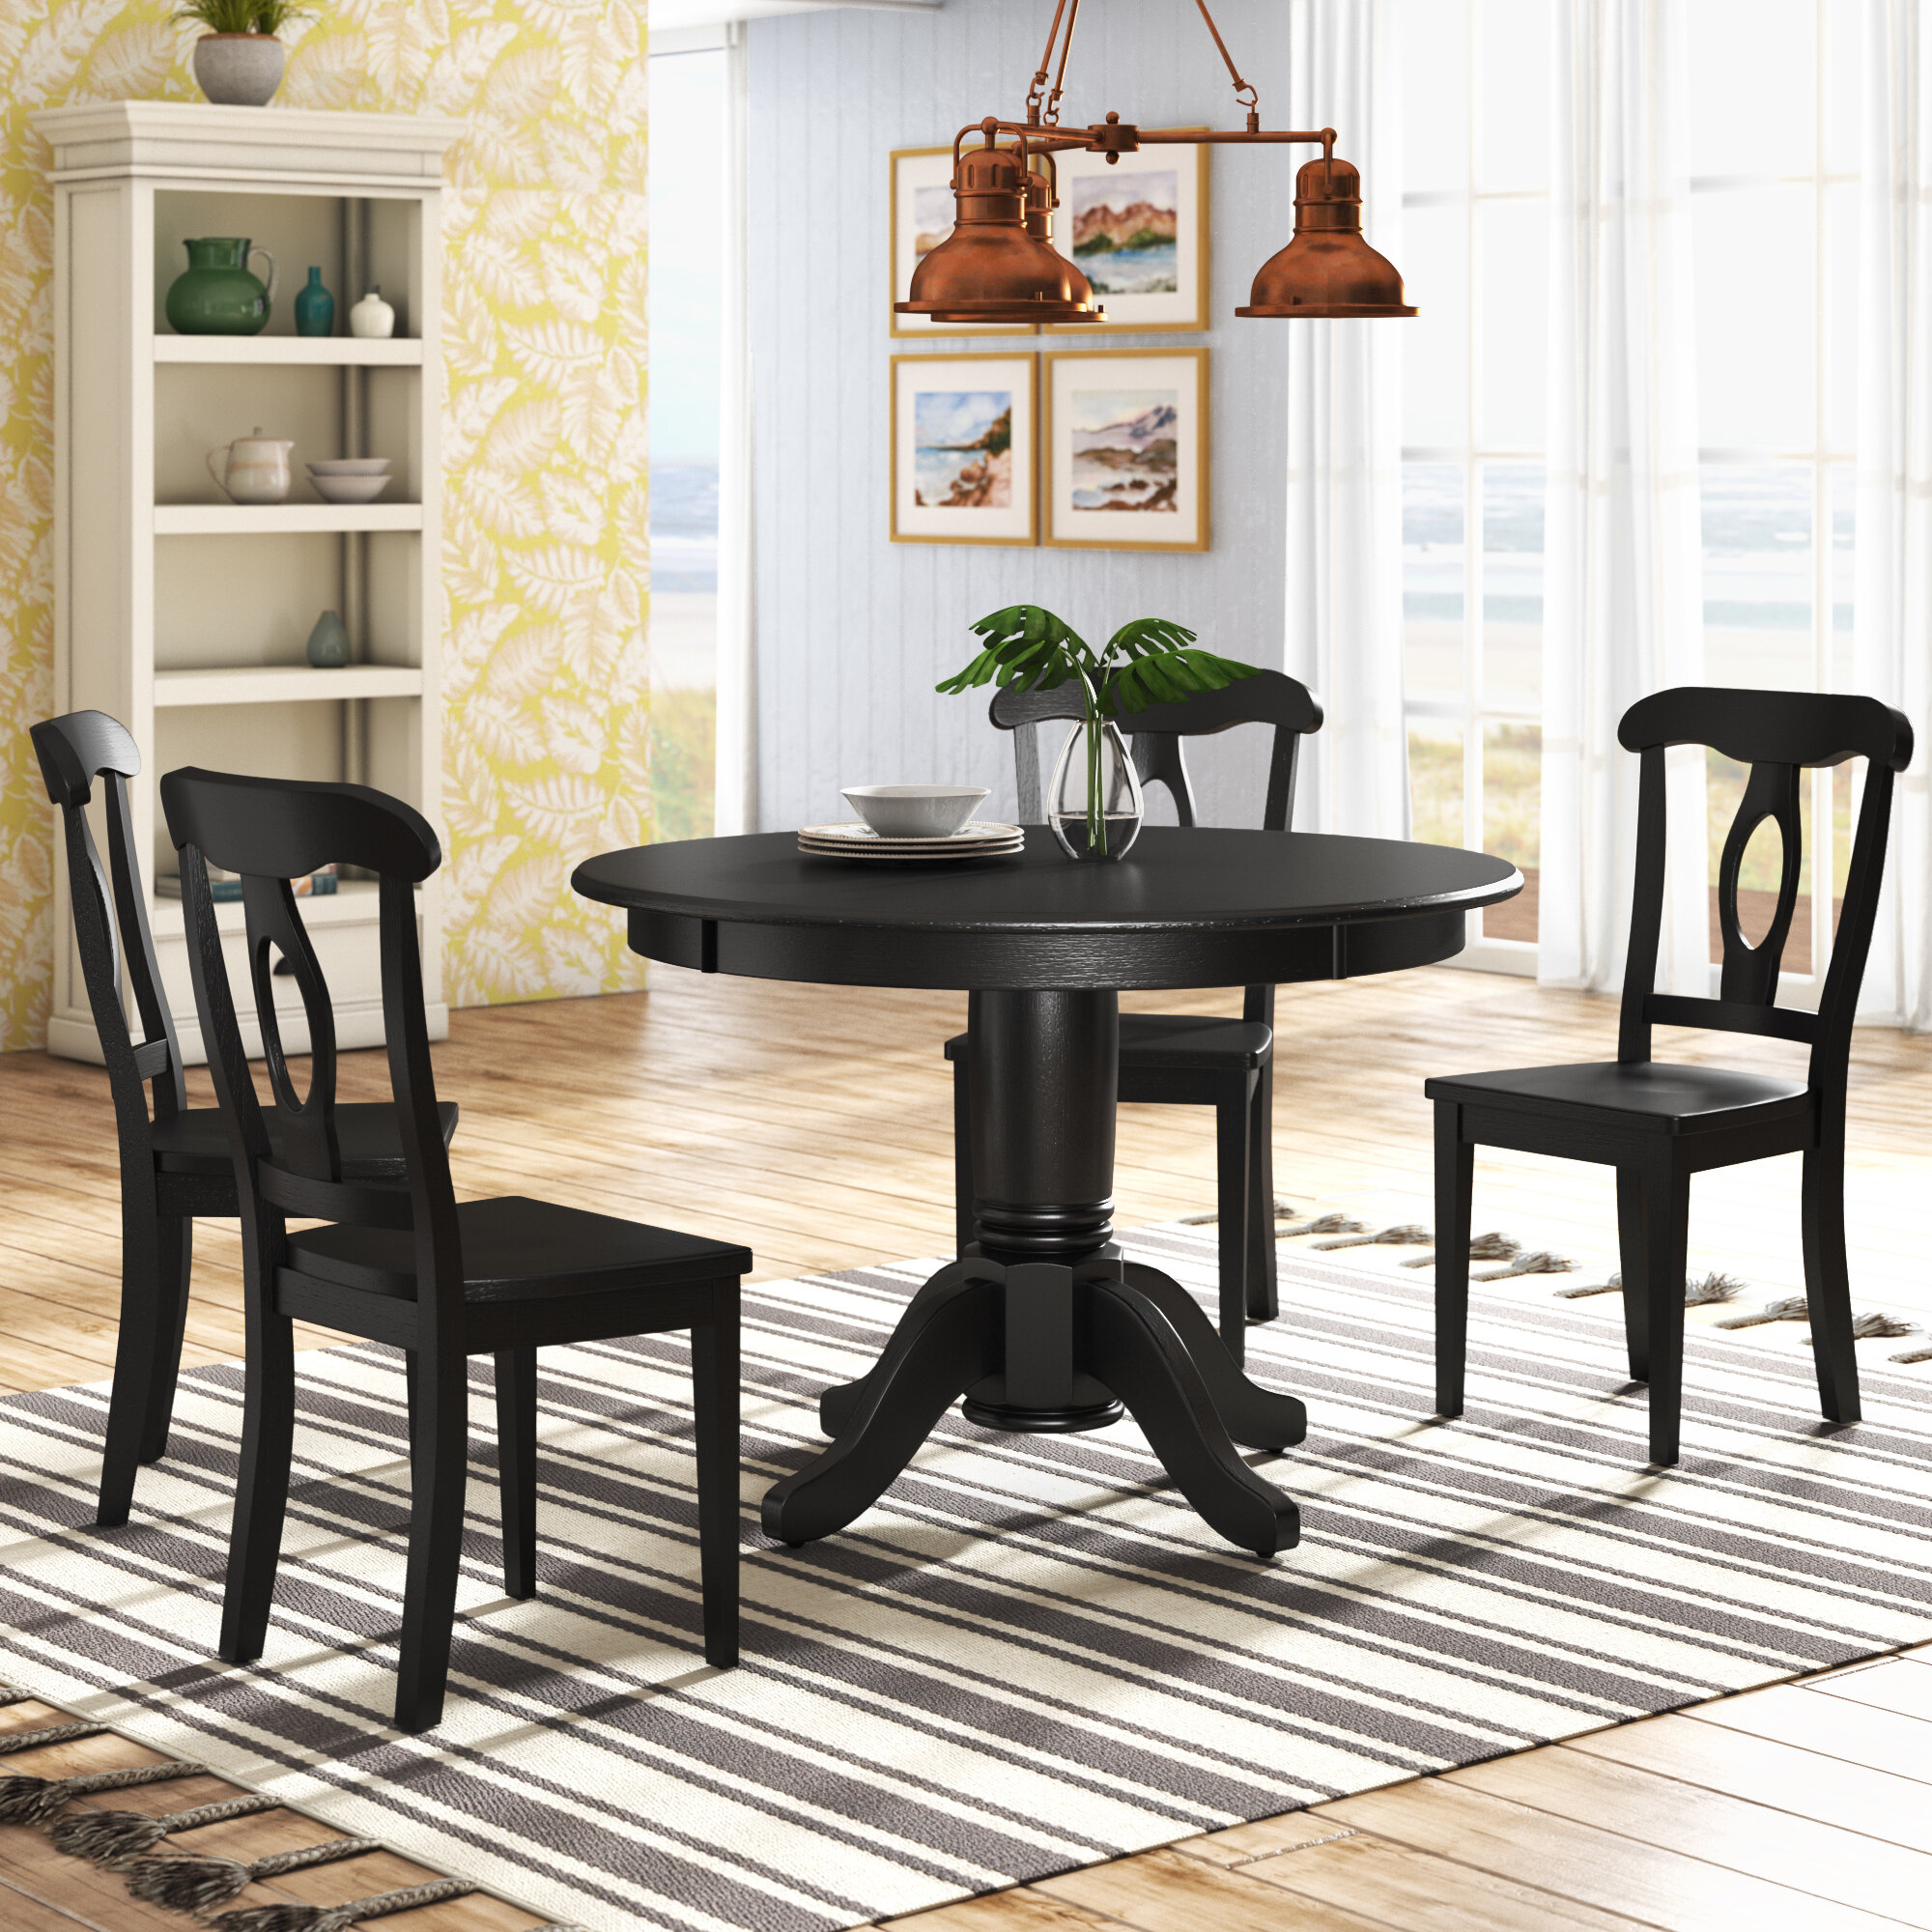 Wayfair | Black Kitchen & Dining Room Sets You'll Love in 2021